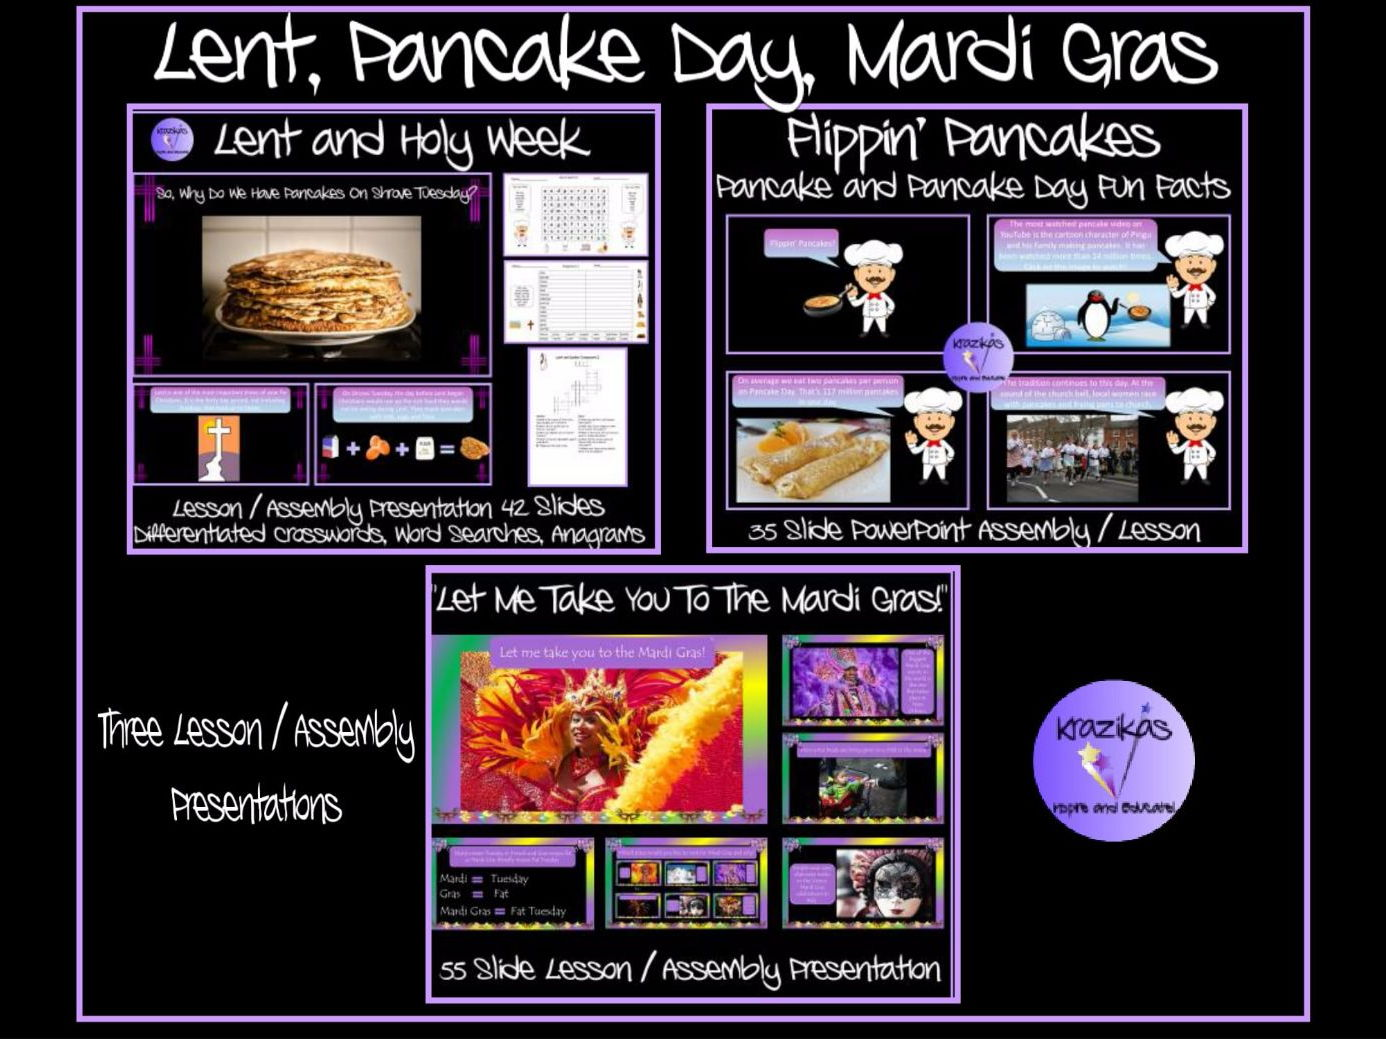 Lent, Pancake Day, Mardi Gras - Three Lesson / Assembly Presentations Bundle